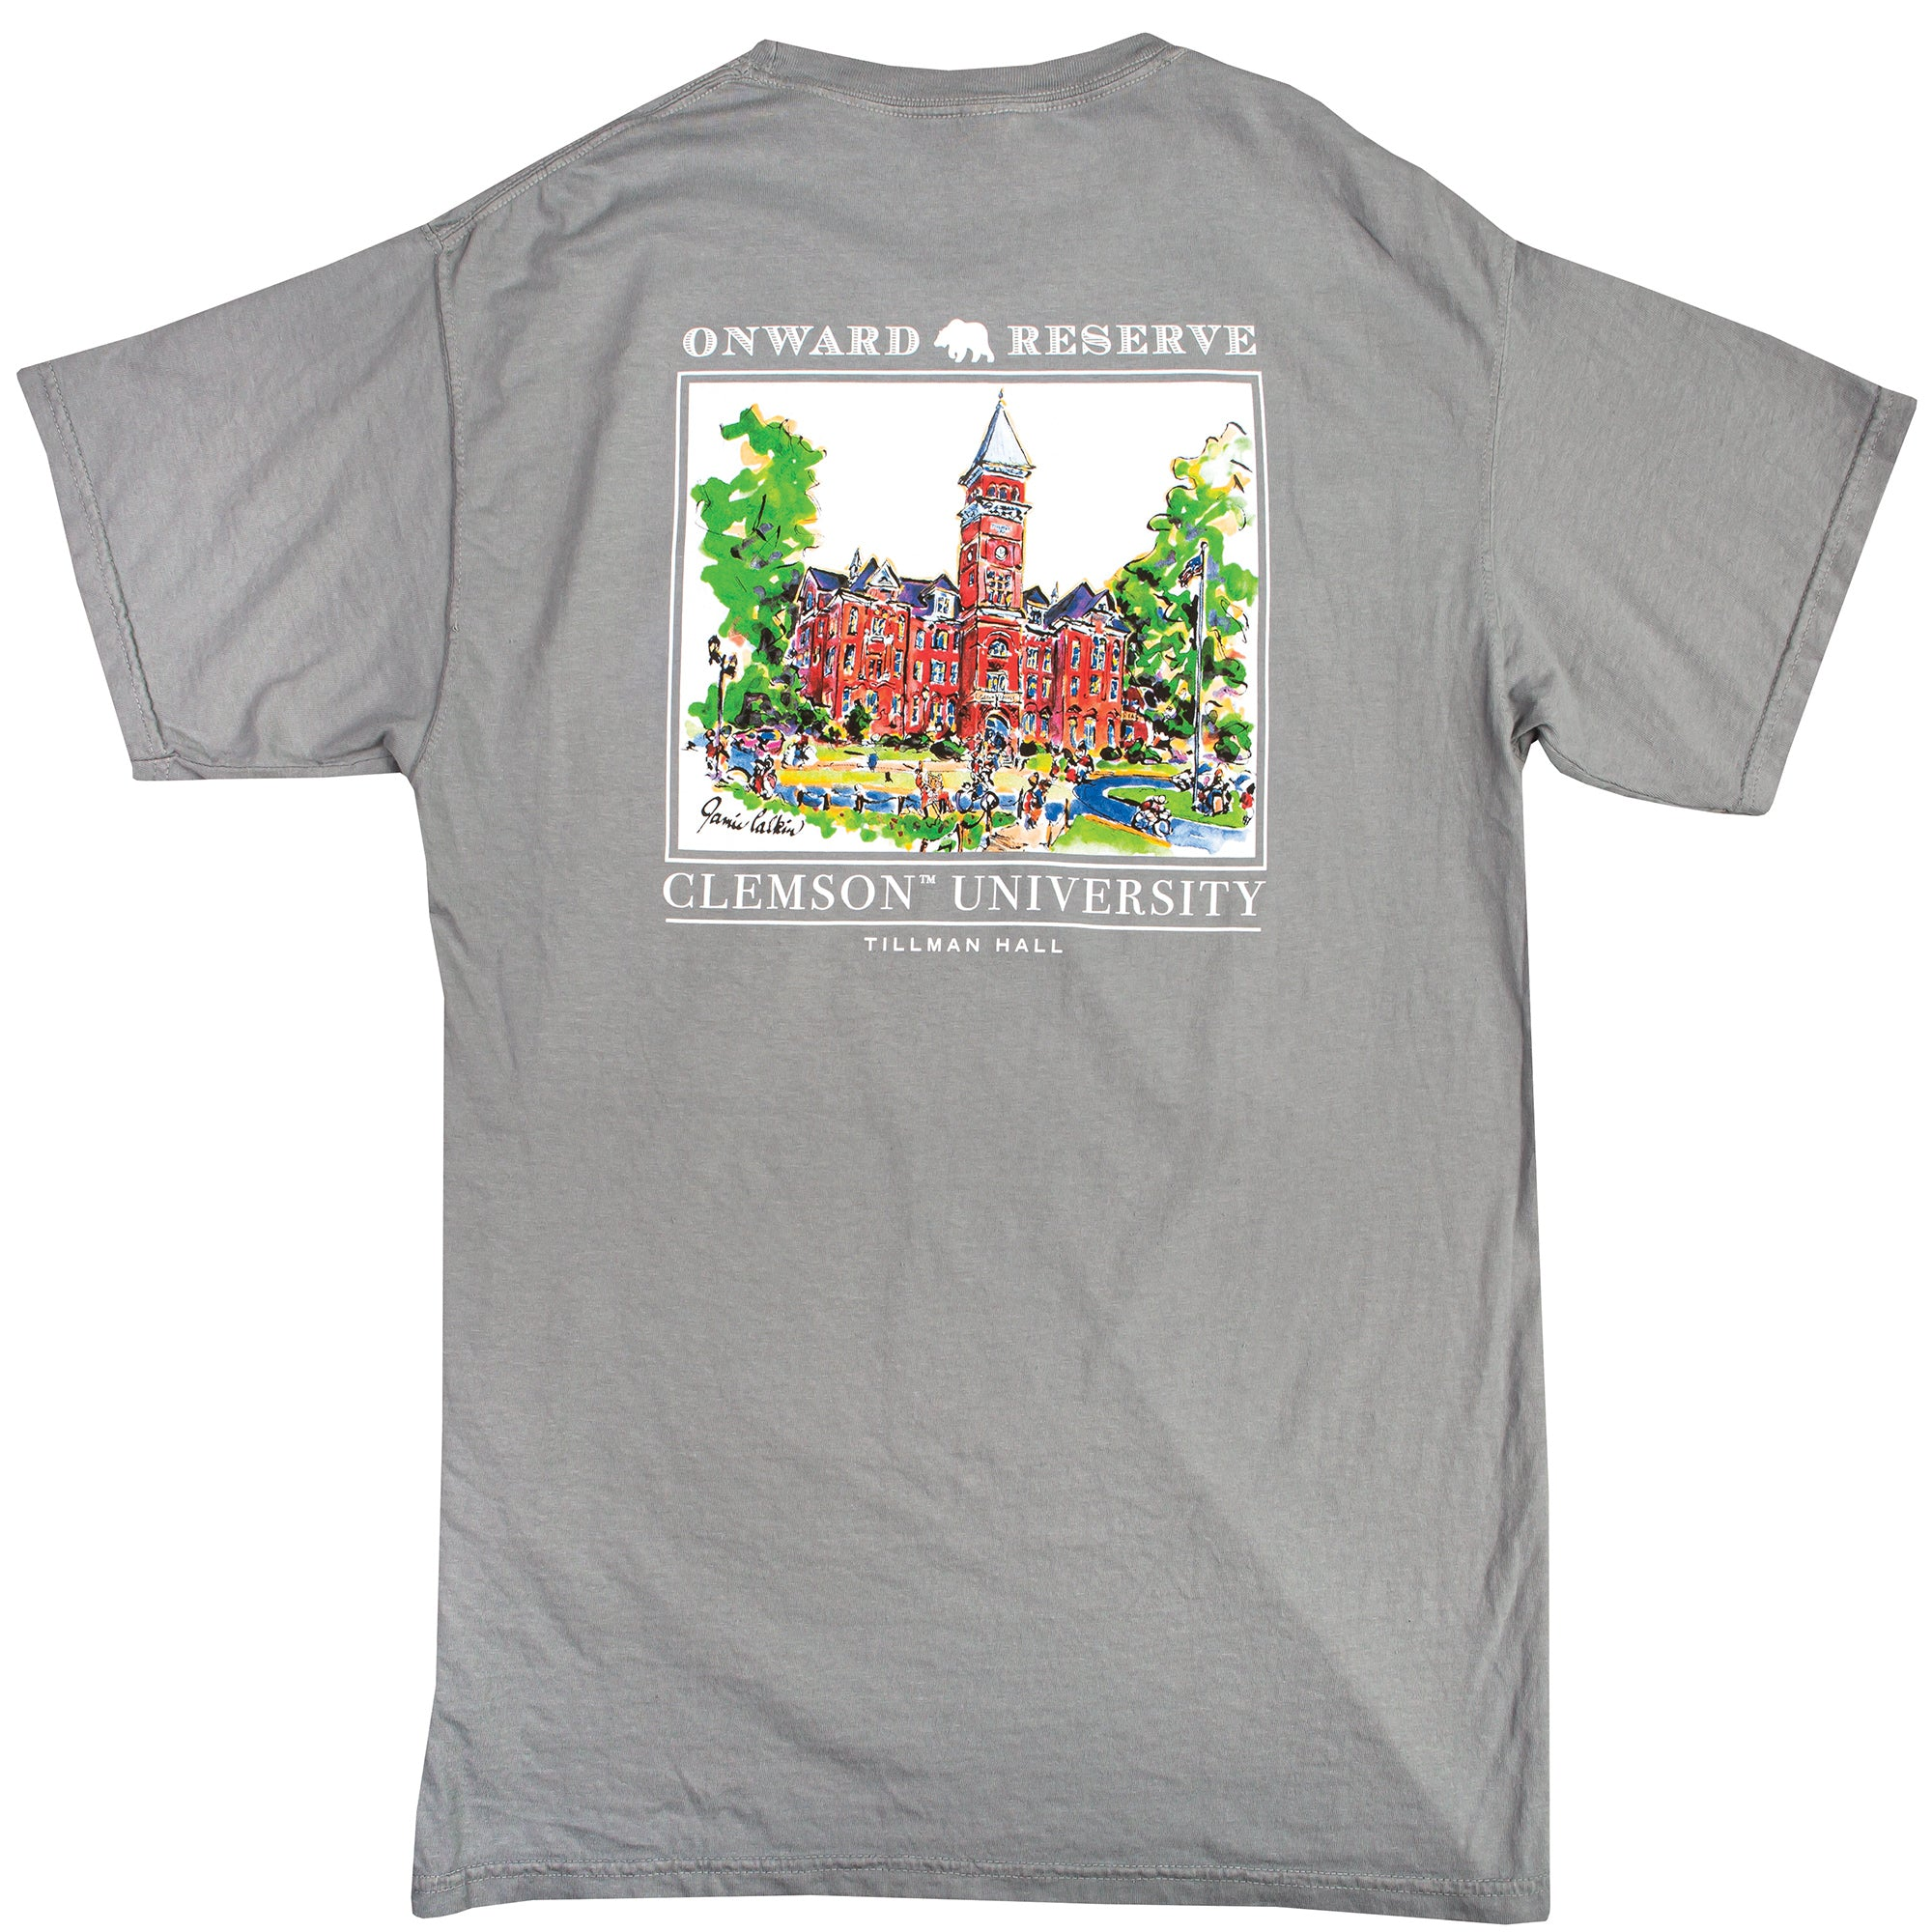 Tillman Hall Short Sleeve Tee - OnwardReserve